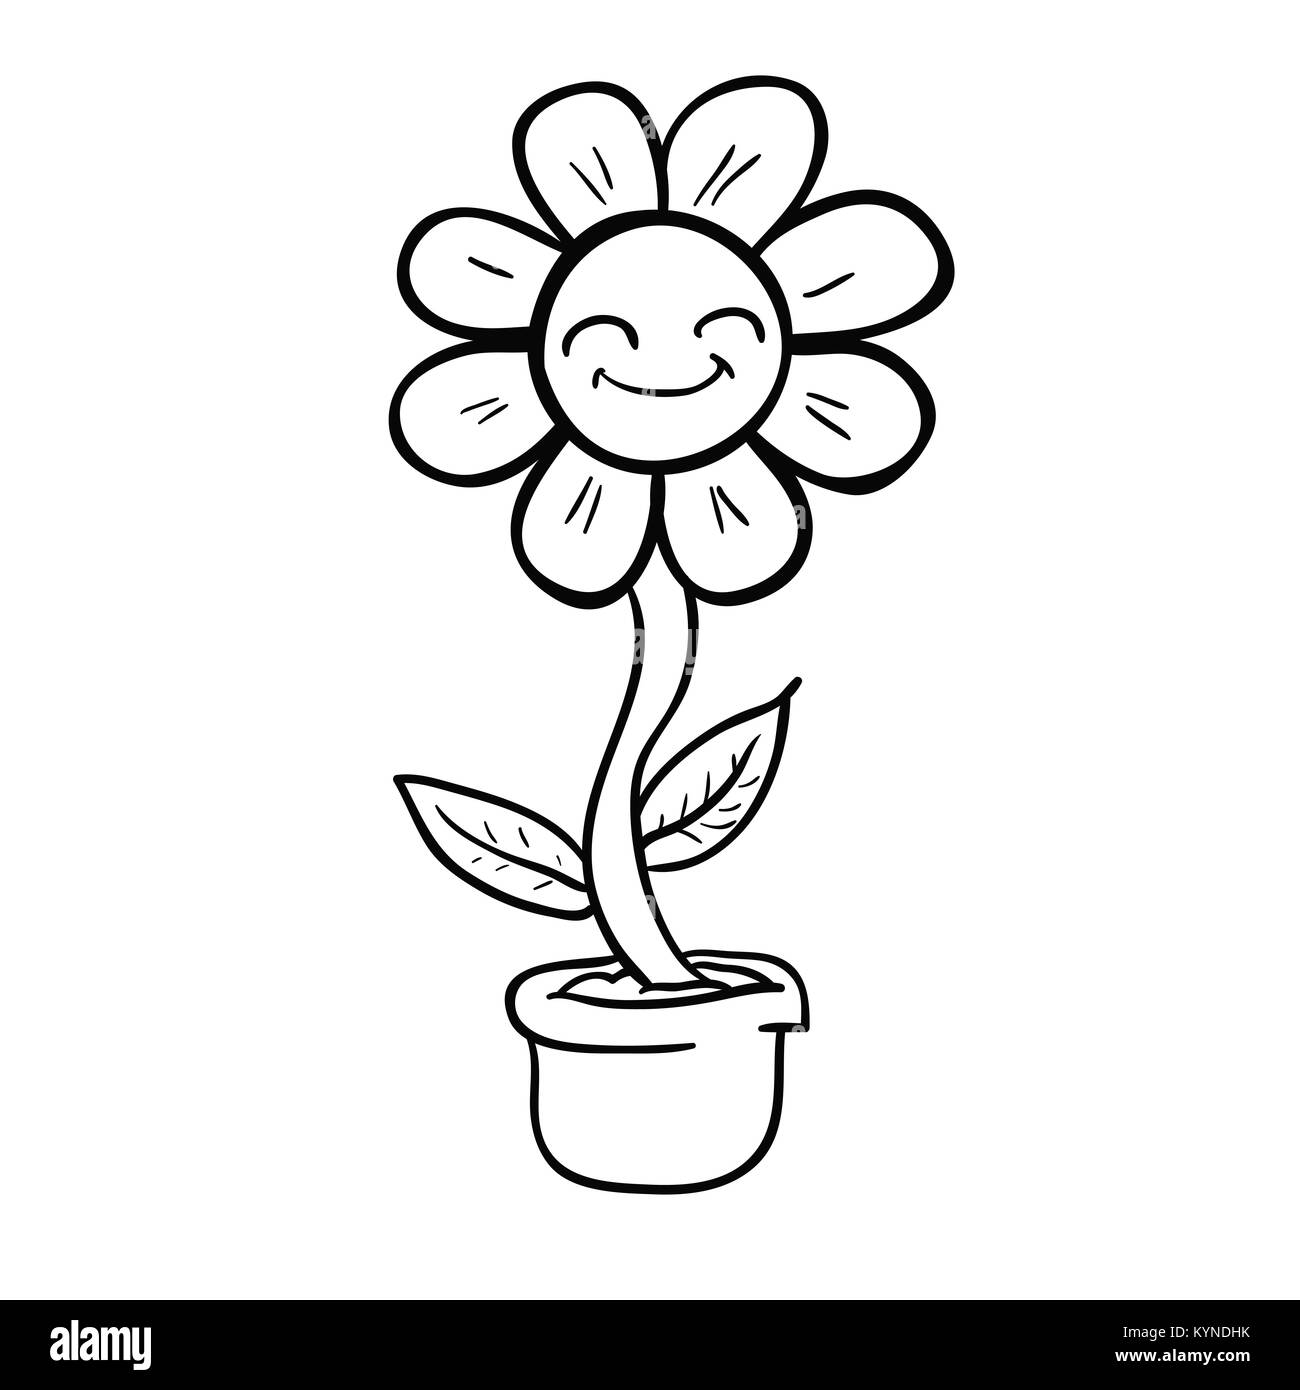 Cartoon Happy Flower In A Pot Black And White Illustration Stock